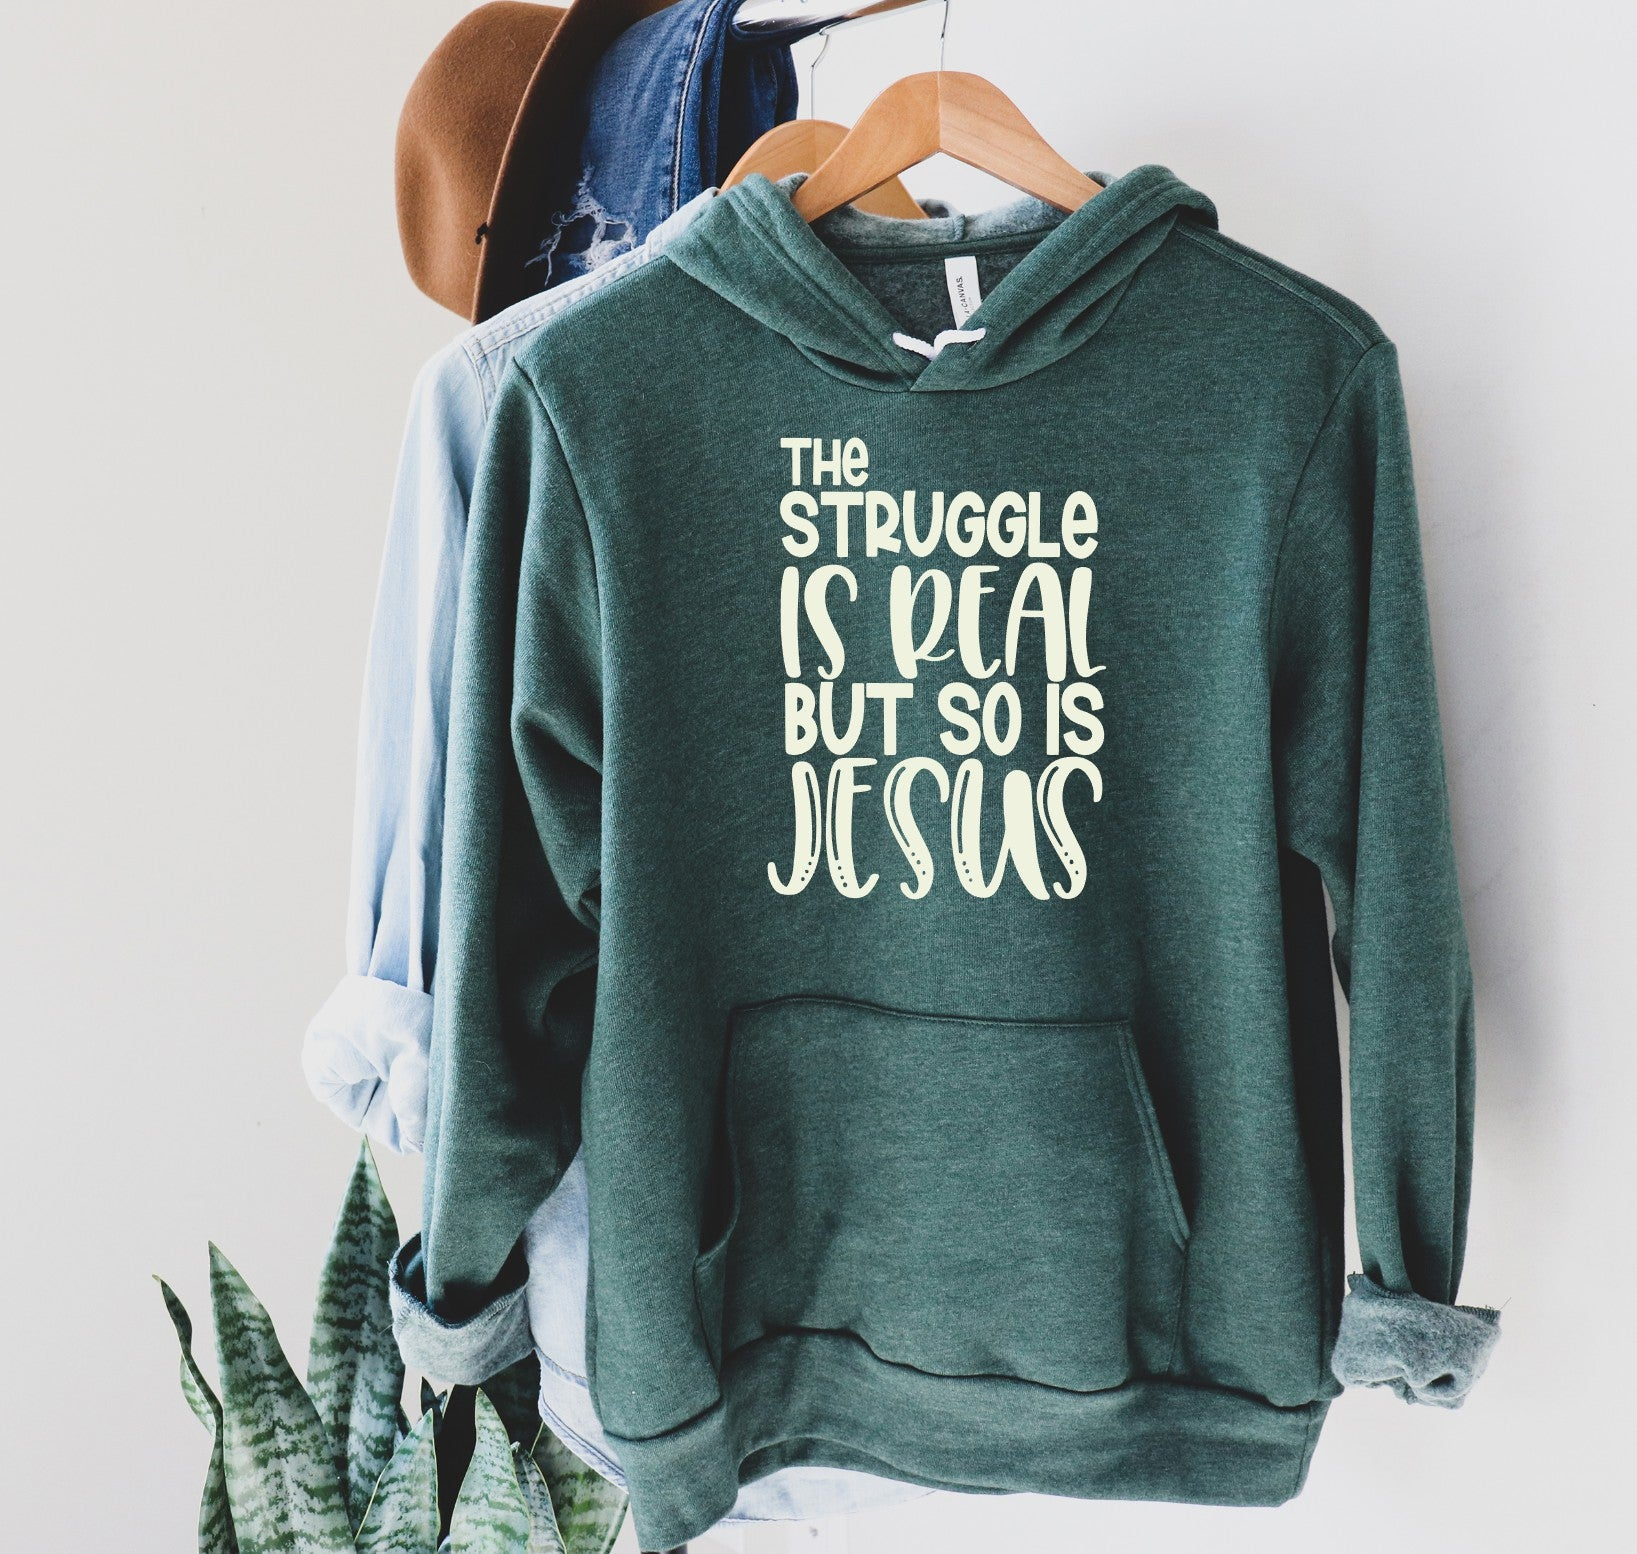 The Struggle is Real But So Is Jesus Printed Tee